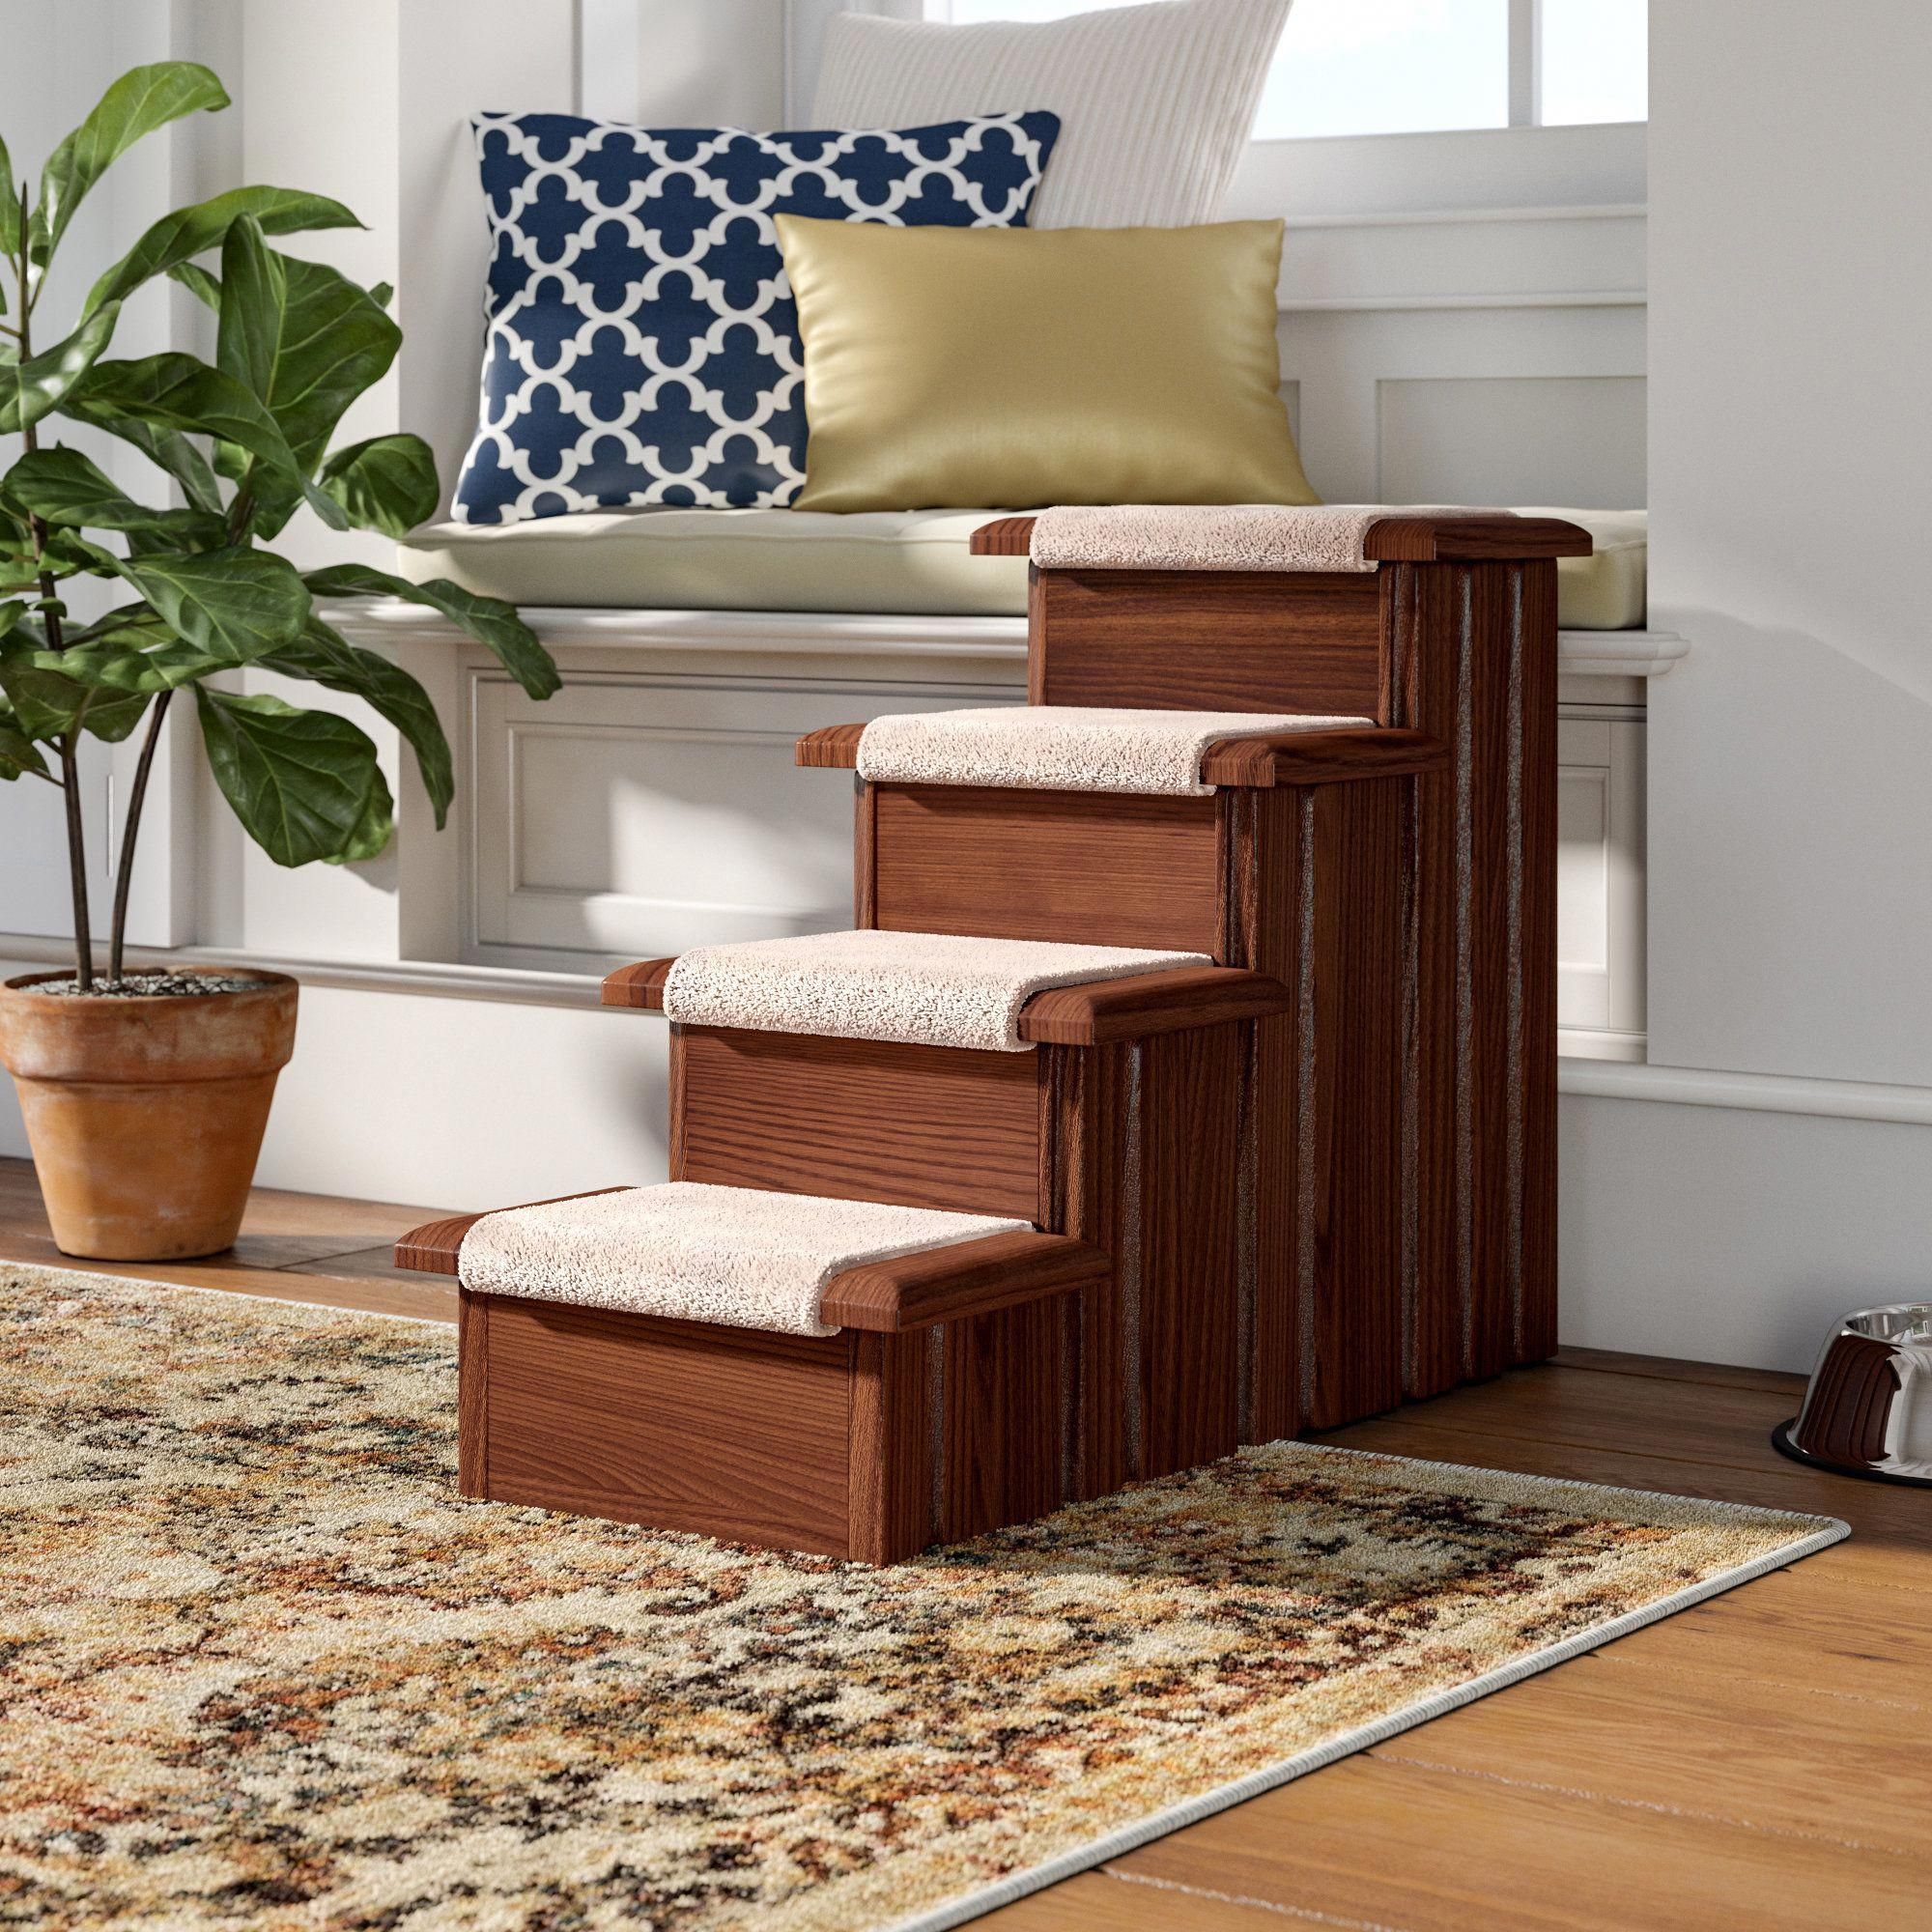 Best Carpet Runners For Stairs Amazon In 2020 With Images 400 x 300